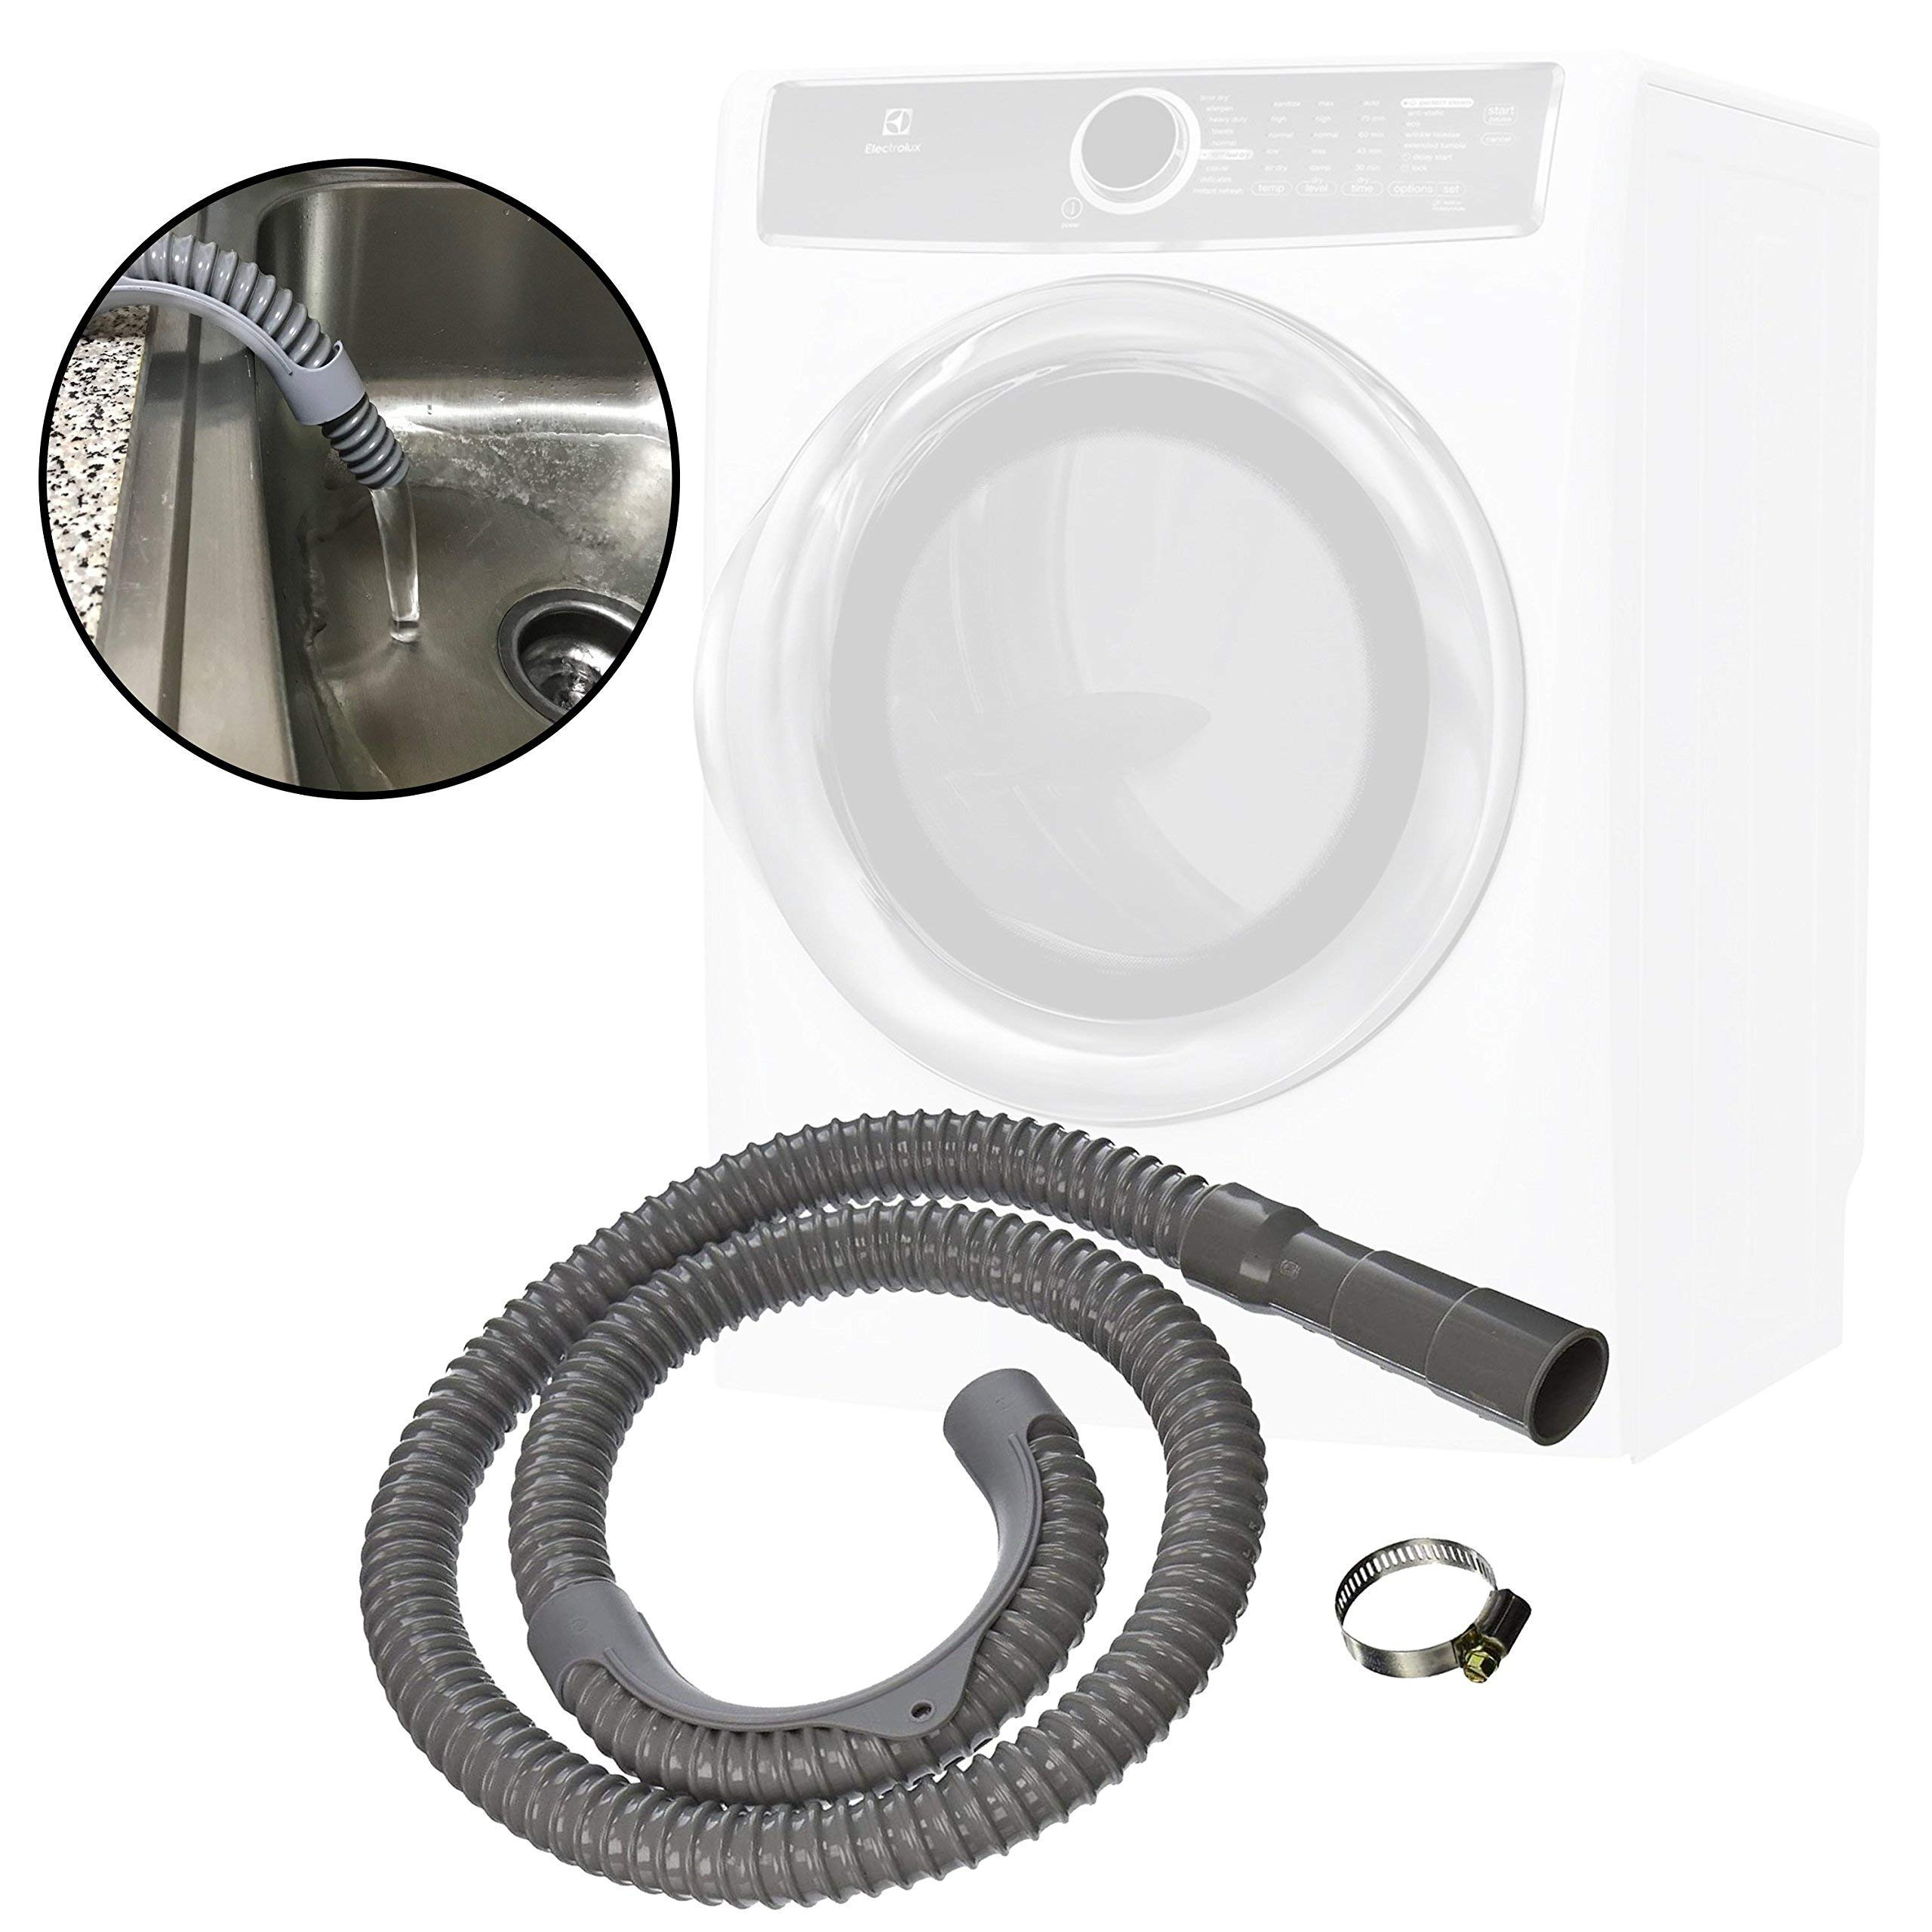 QUALITY-HOSES Washer Discharge Hose 12ft-long by QUALITY-HOSES